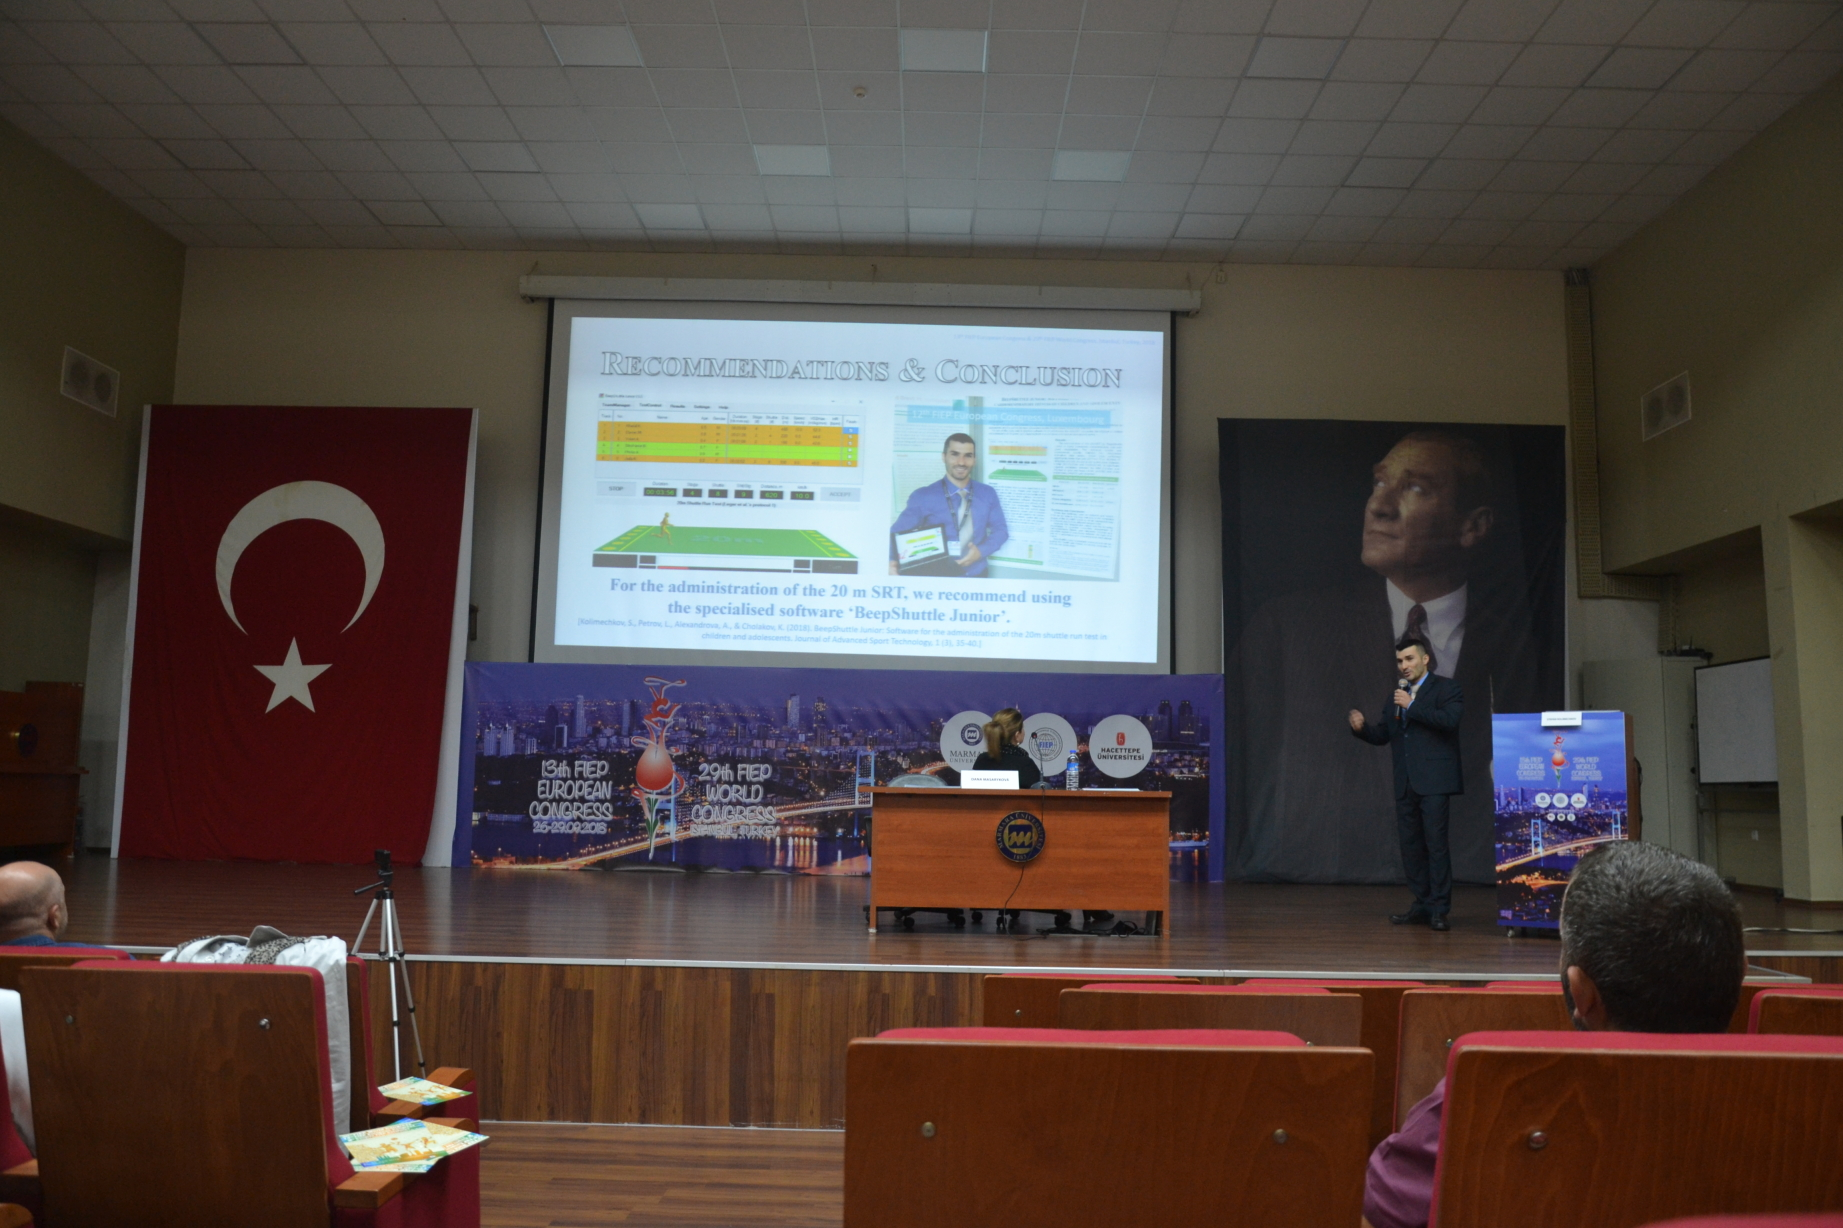 The beep test software BeepShuttle Junior was mentioned at the 13th European and 29th World FIEP Congress in Istanbul, 2018